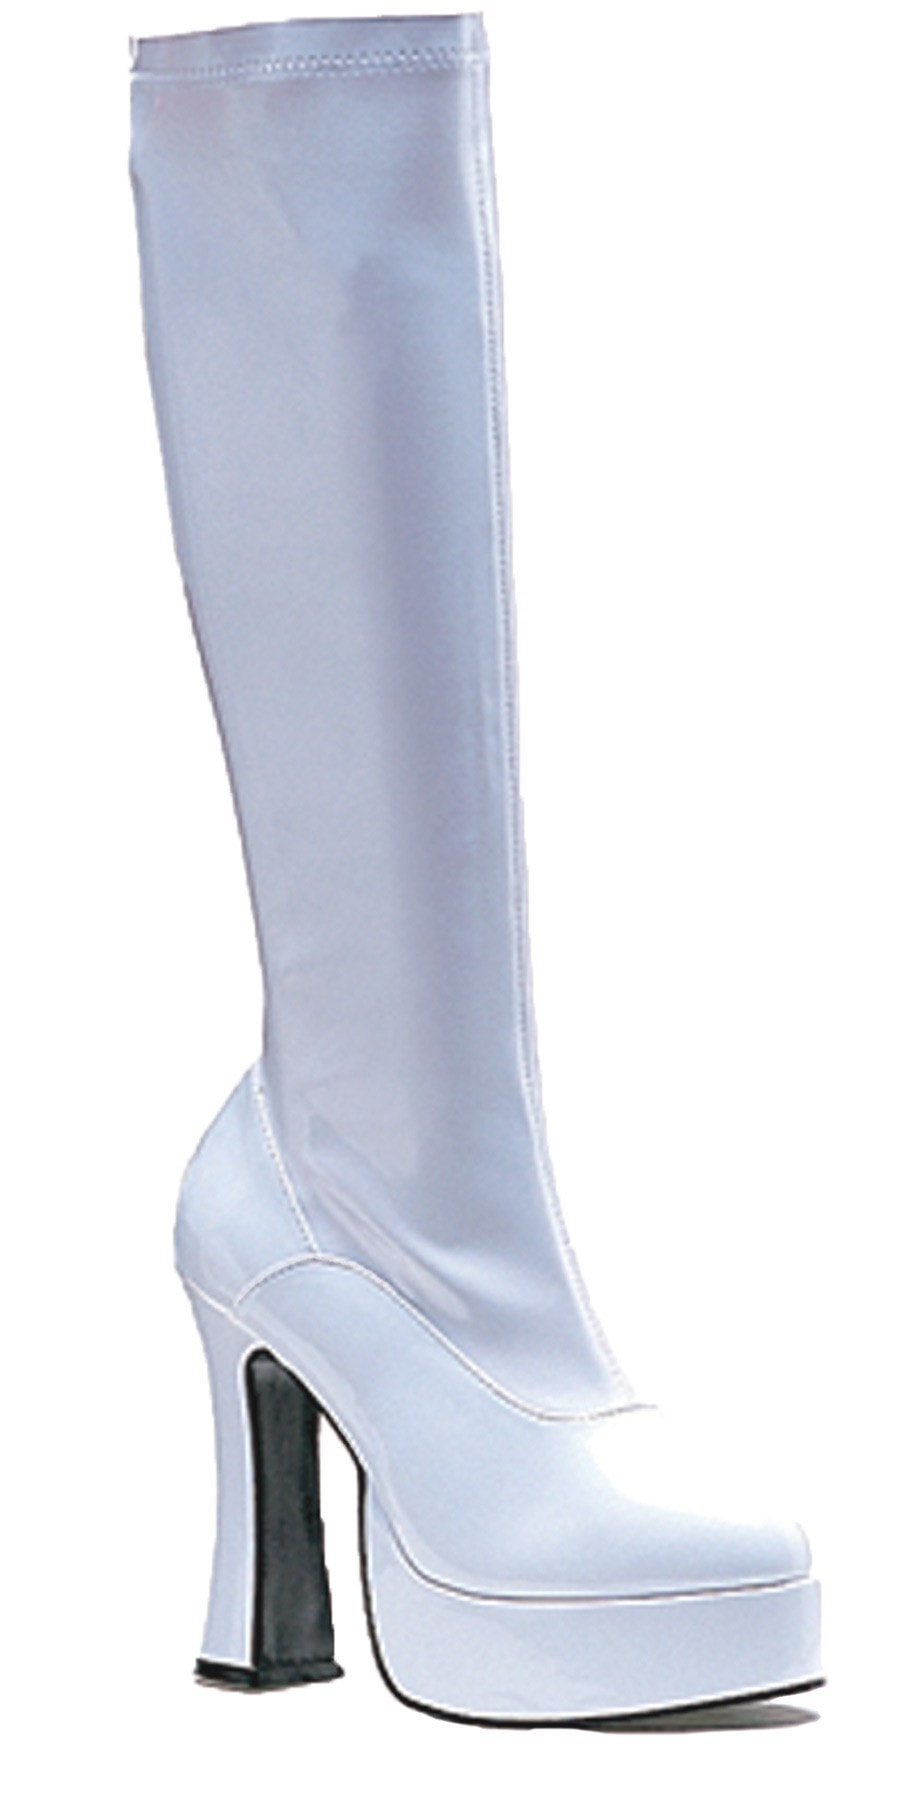 Morris Boot Chacha White Size 8 - MaxWigs